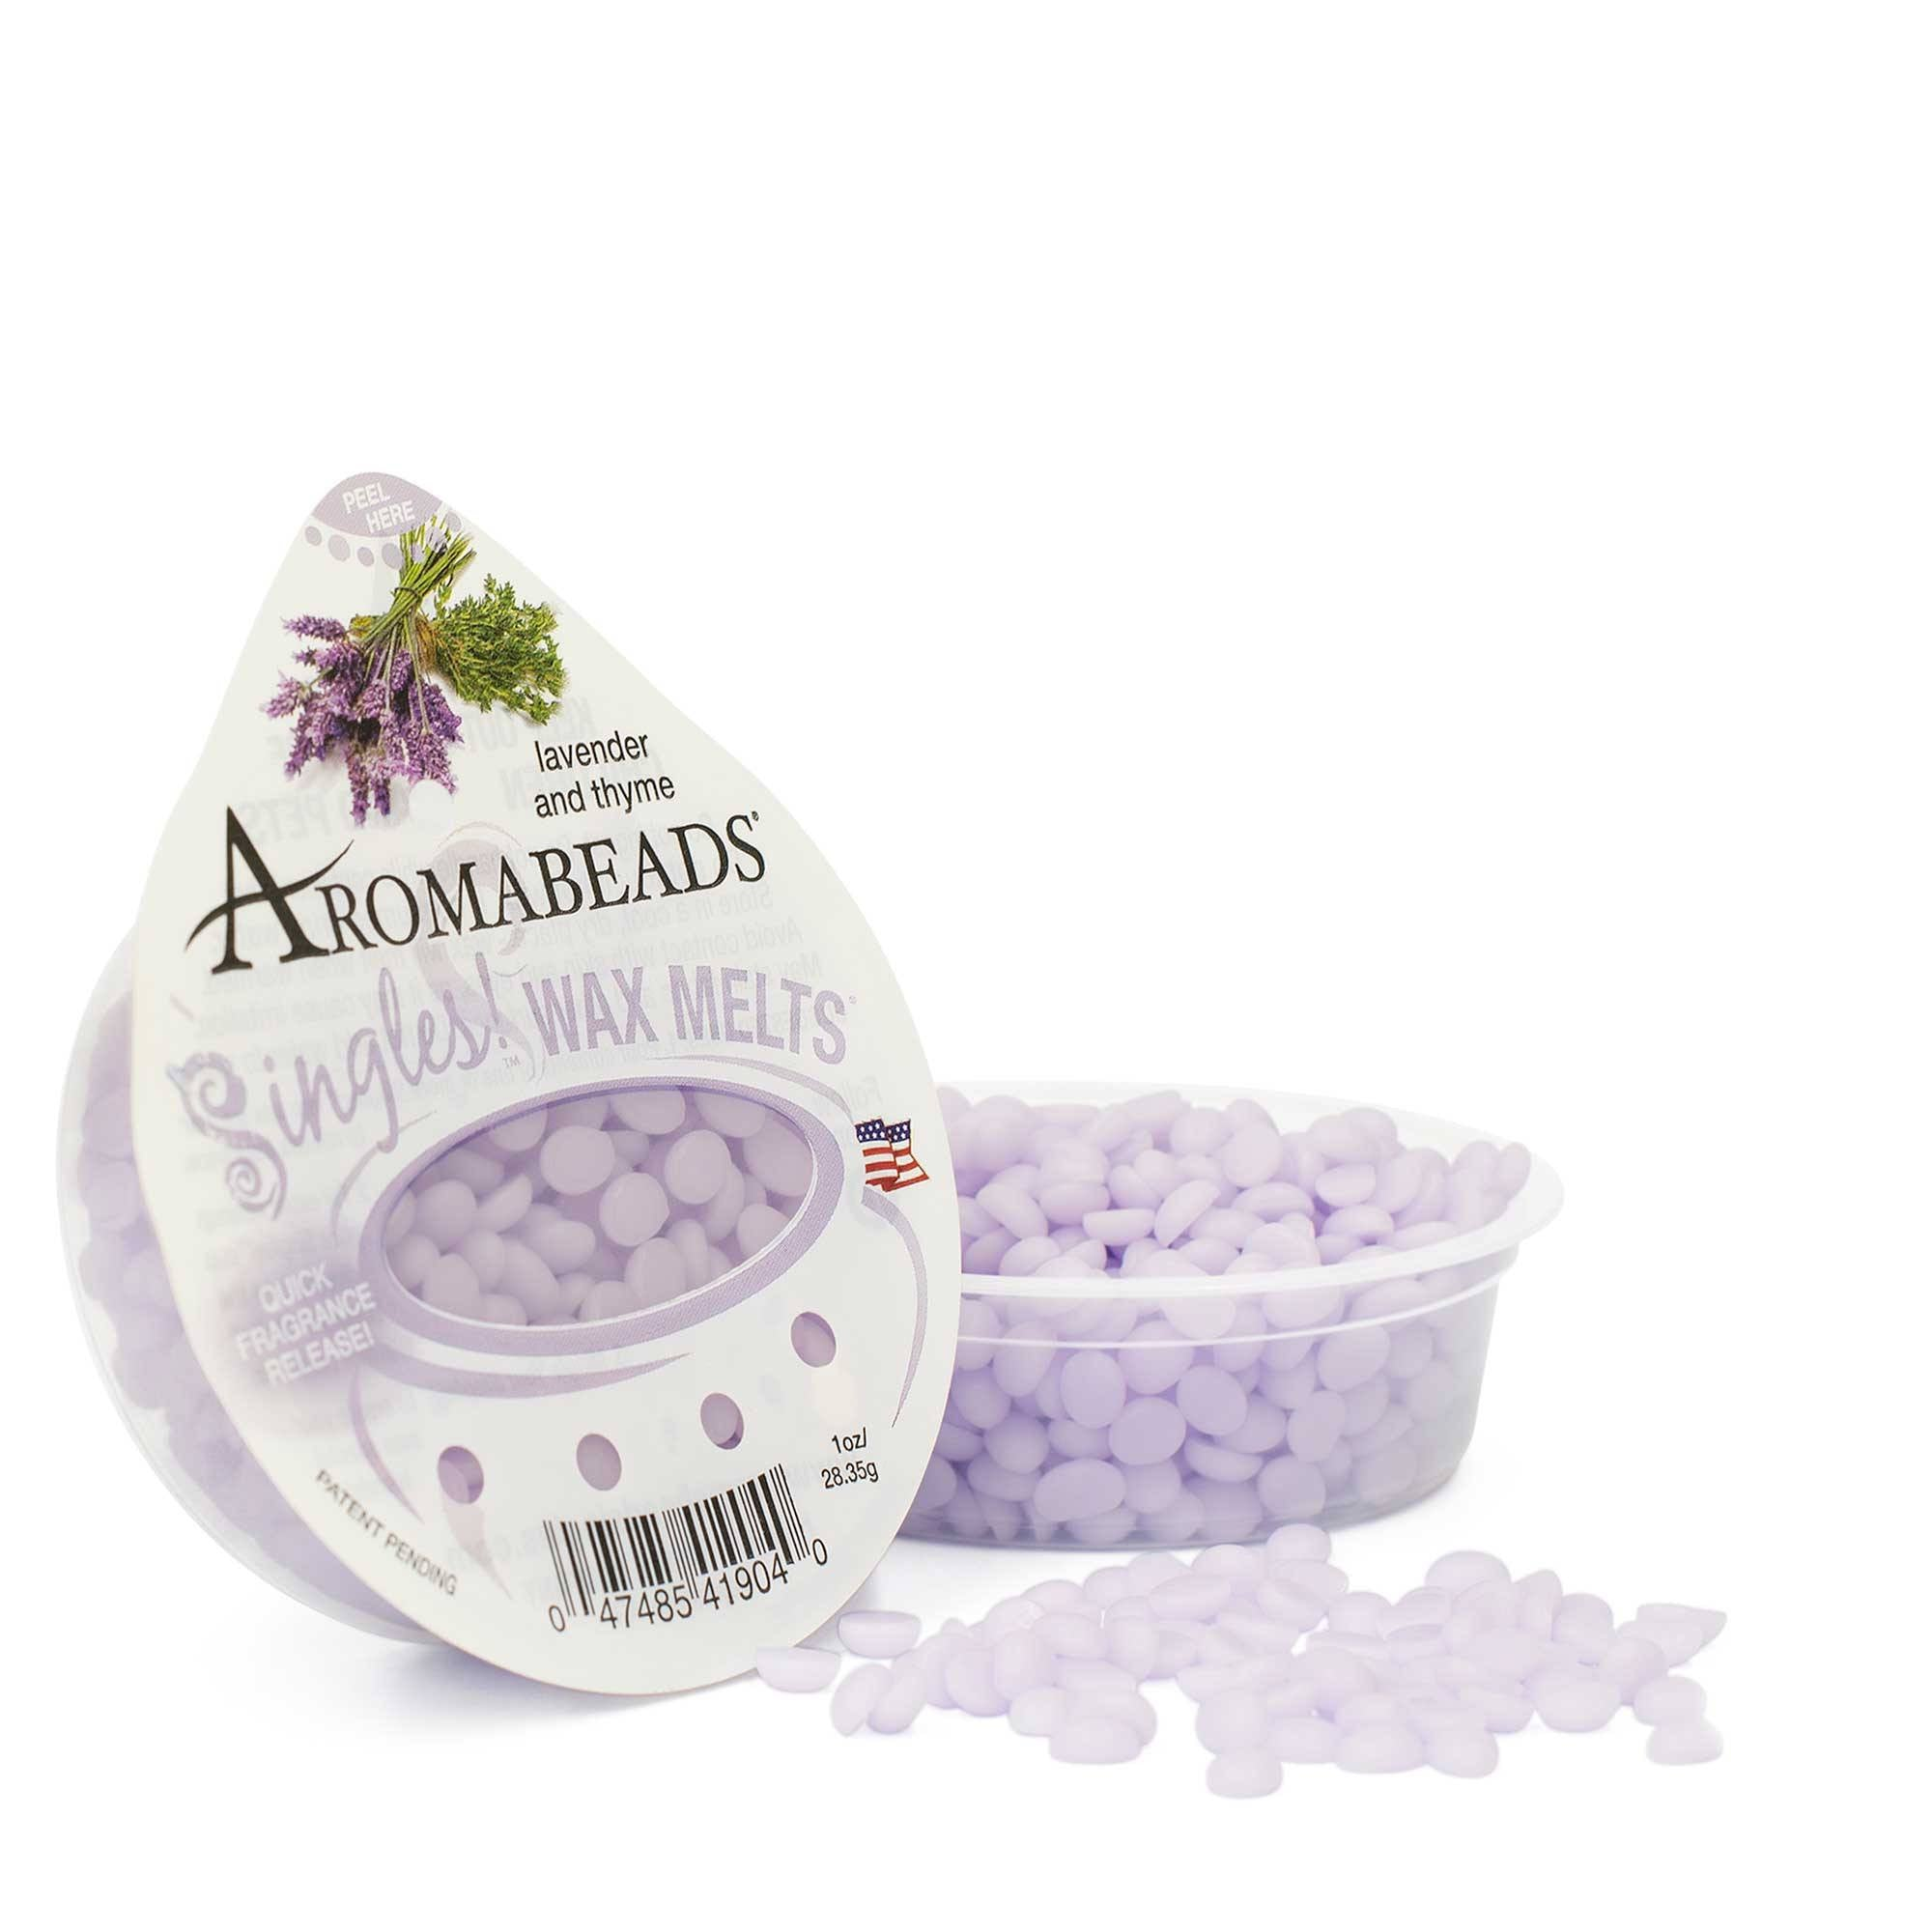 Aromabeads Singles Lavender Thyme Scented Wax Melts - Candlemart.com - 1